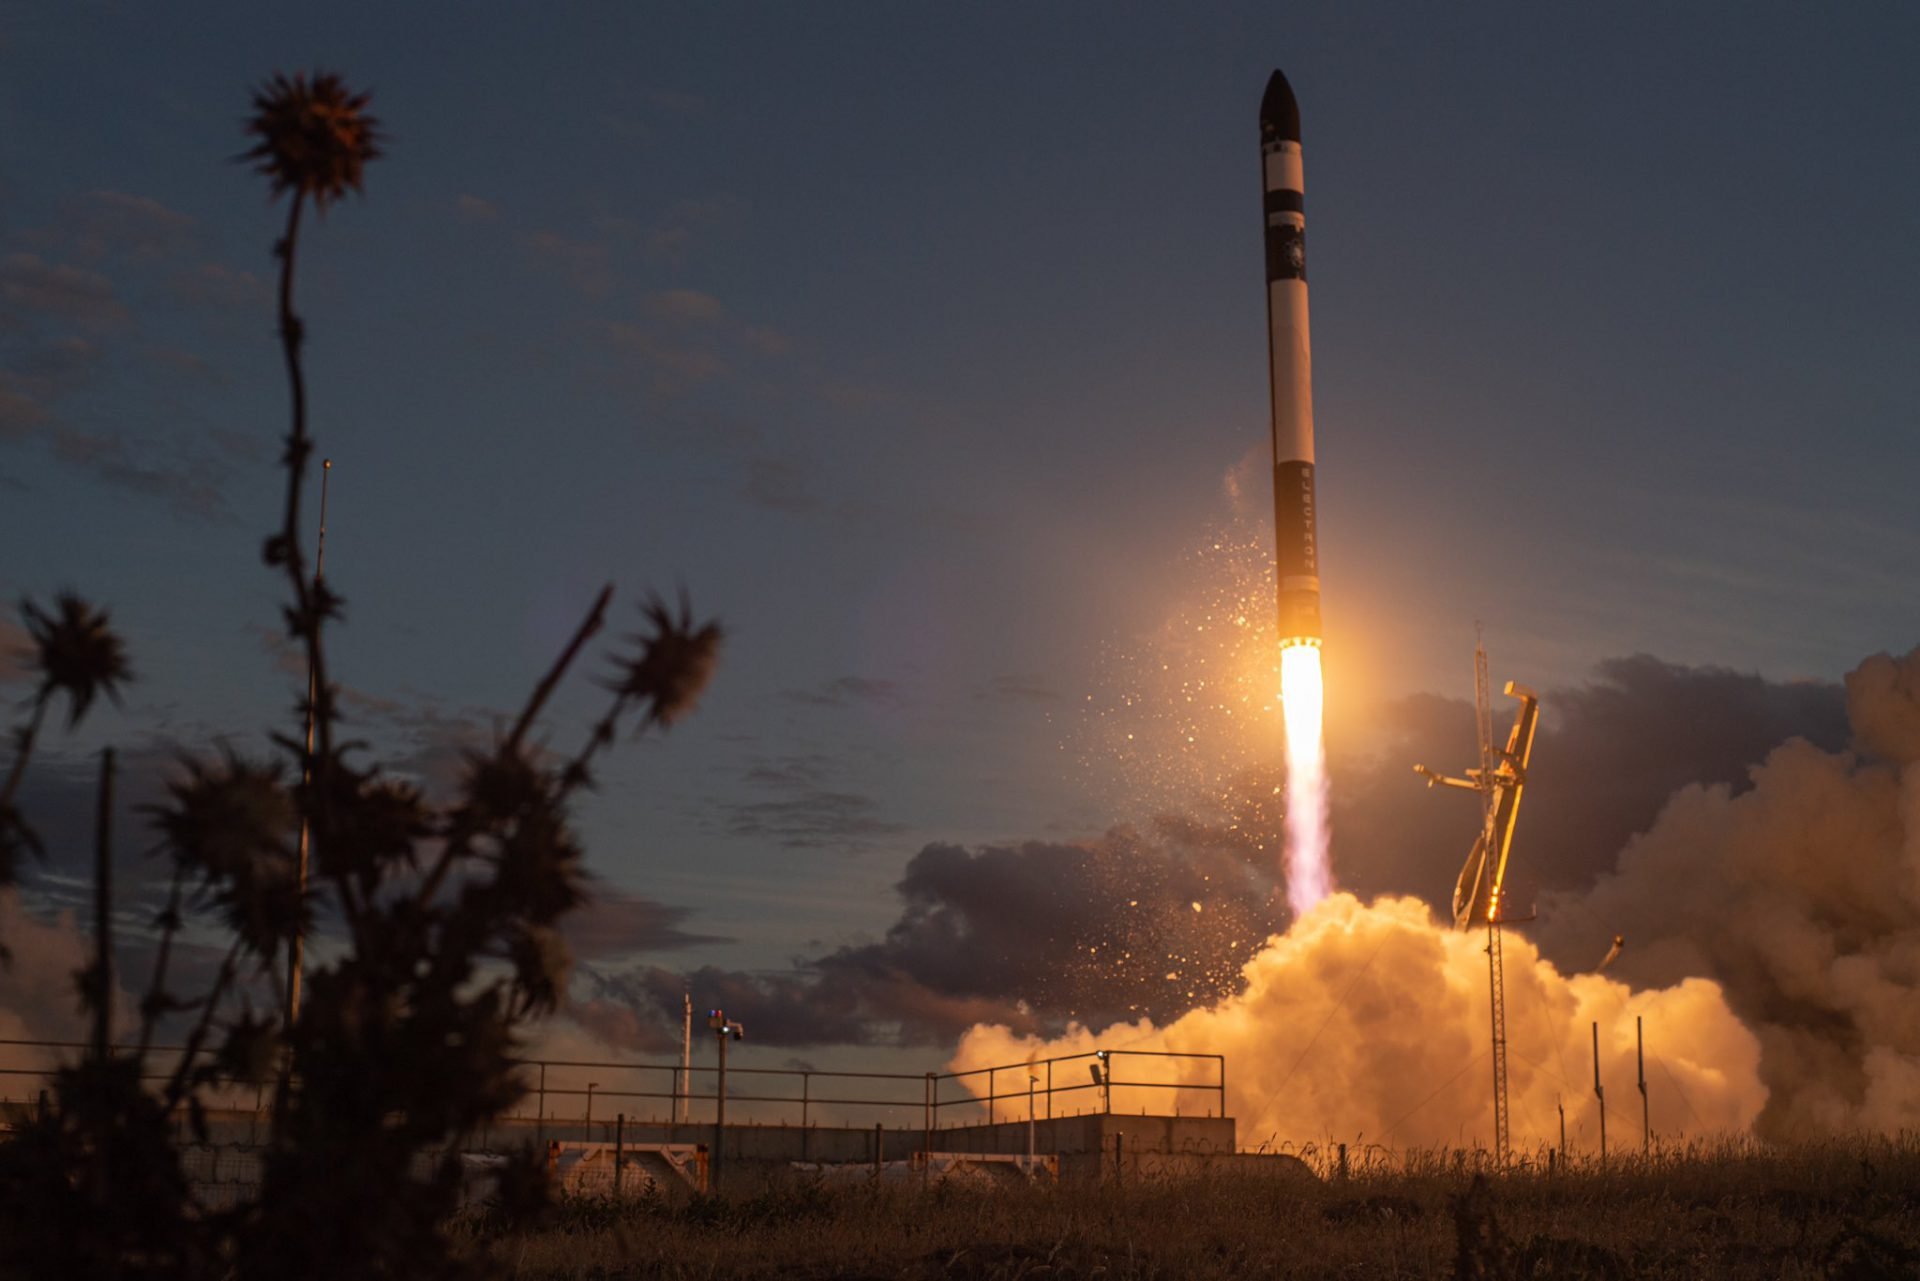 Electron KS launches LEO comsat from Mahia Peninsula in New Zealand